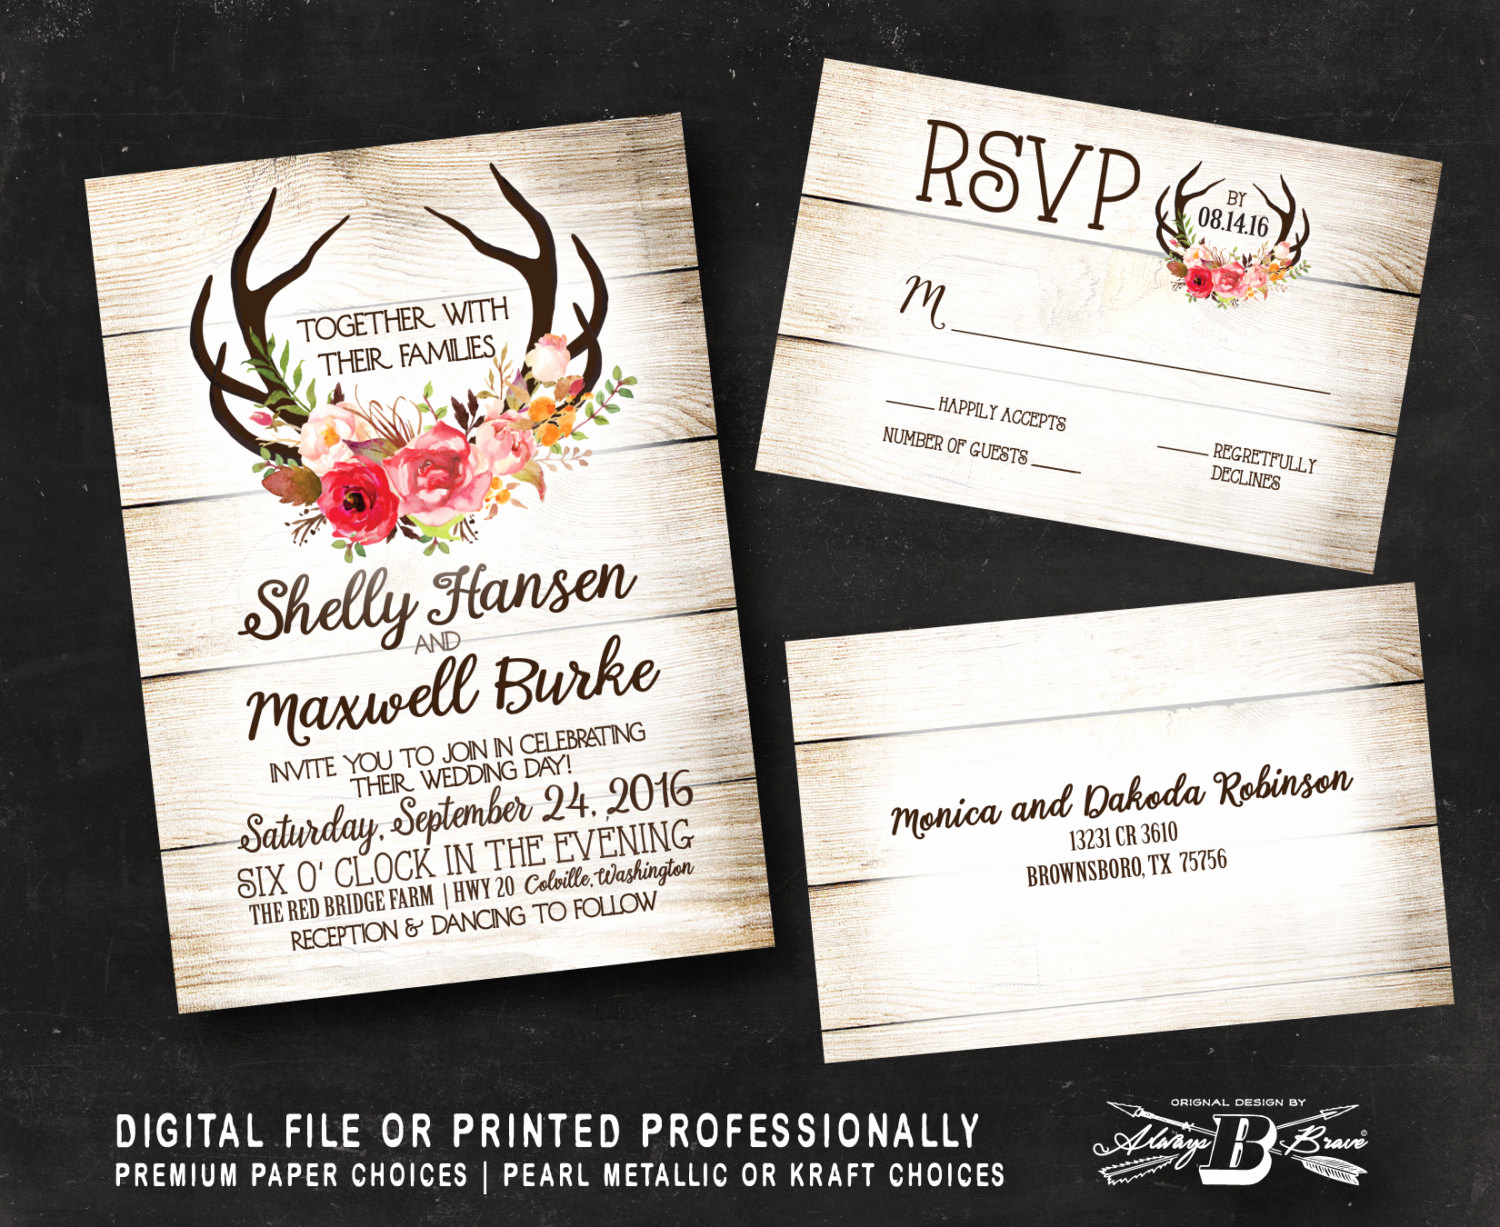 Rustic Wedding Invitation Sets Elegant Rustic Wedding Invitation Set Wood Wedding Invitation